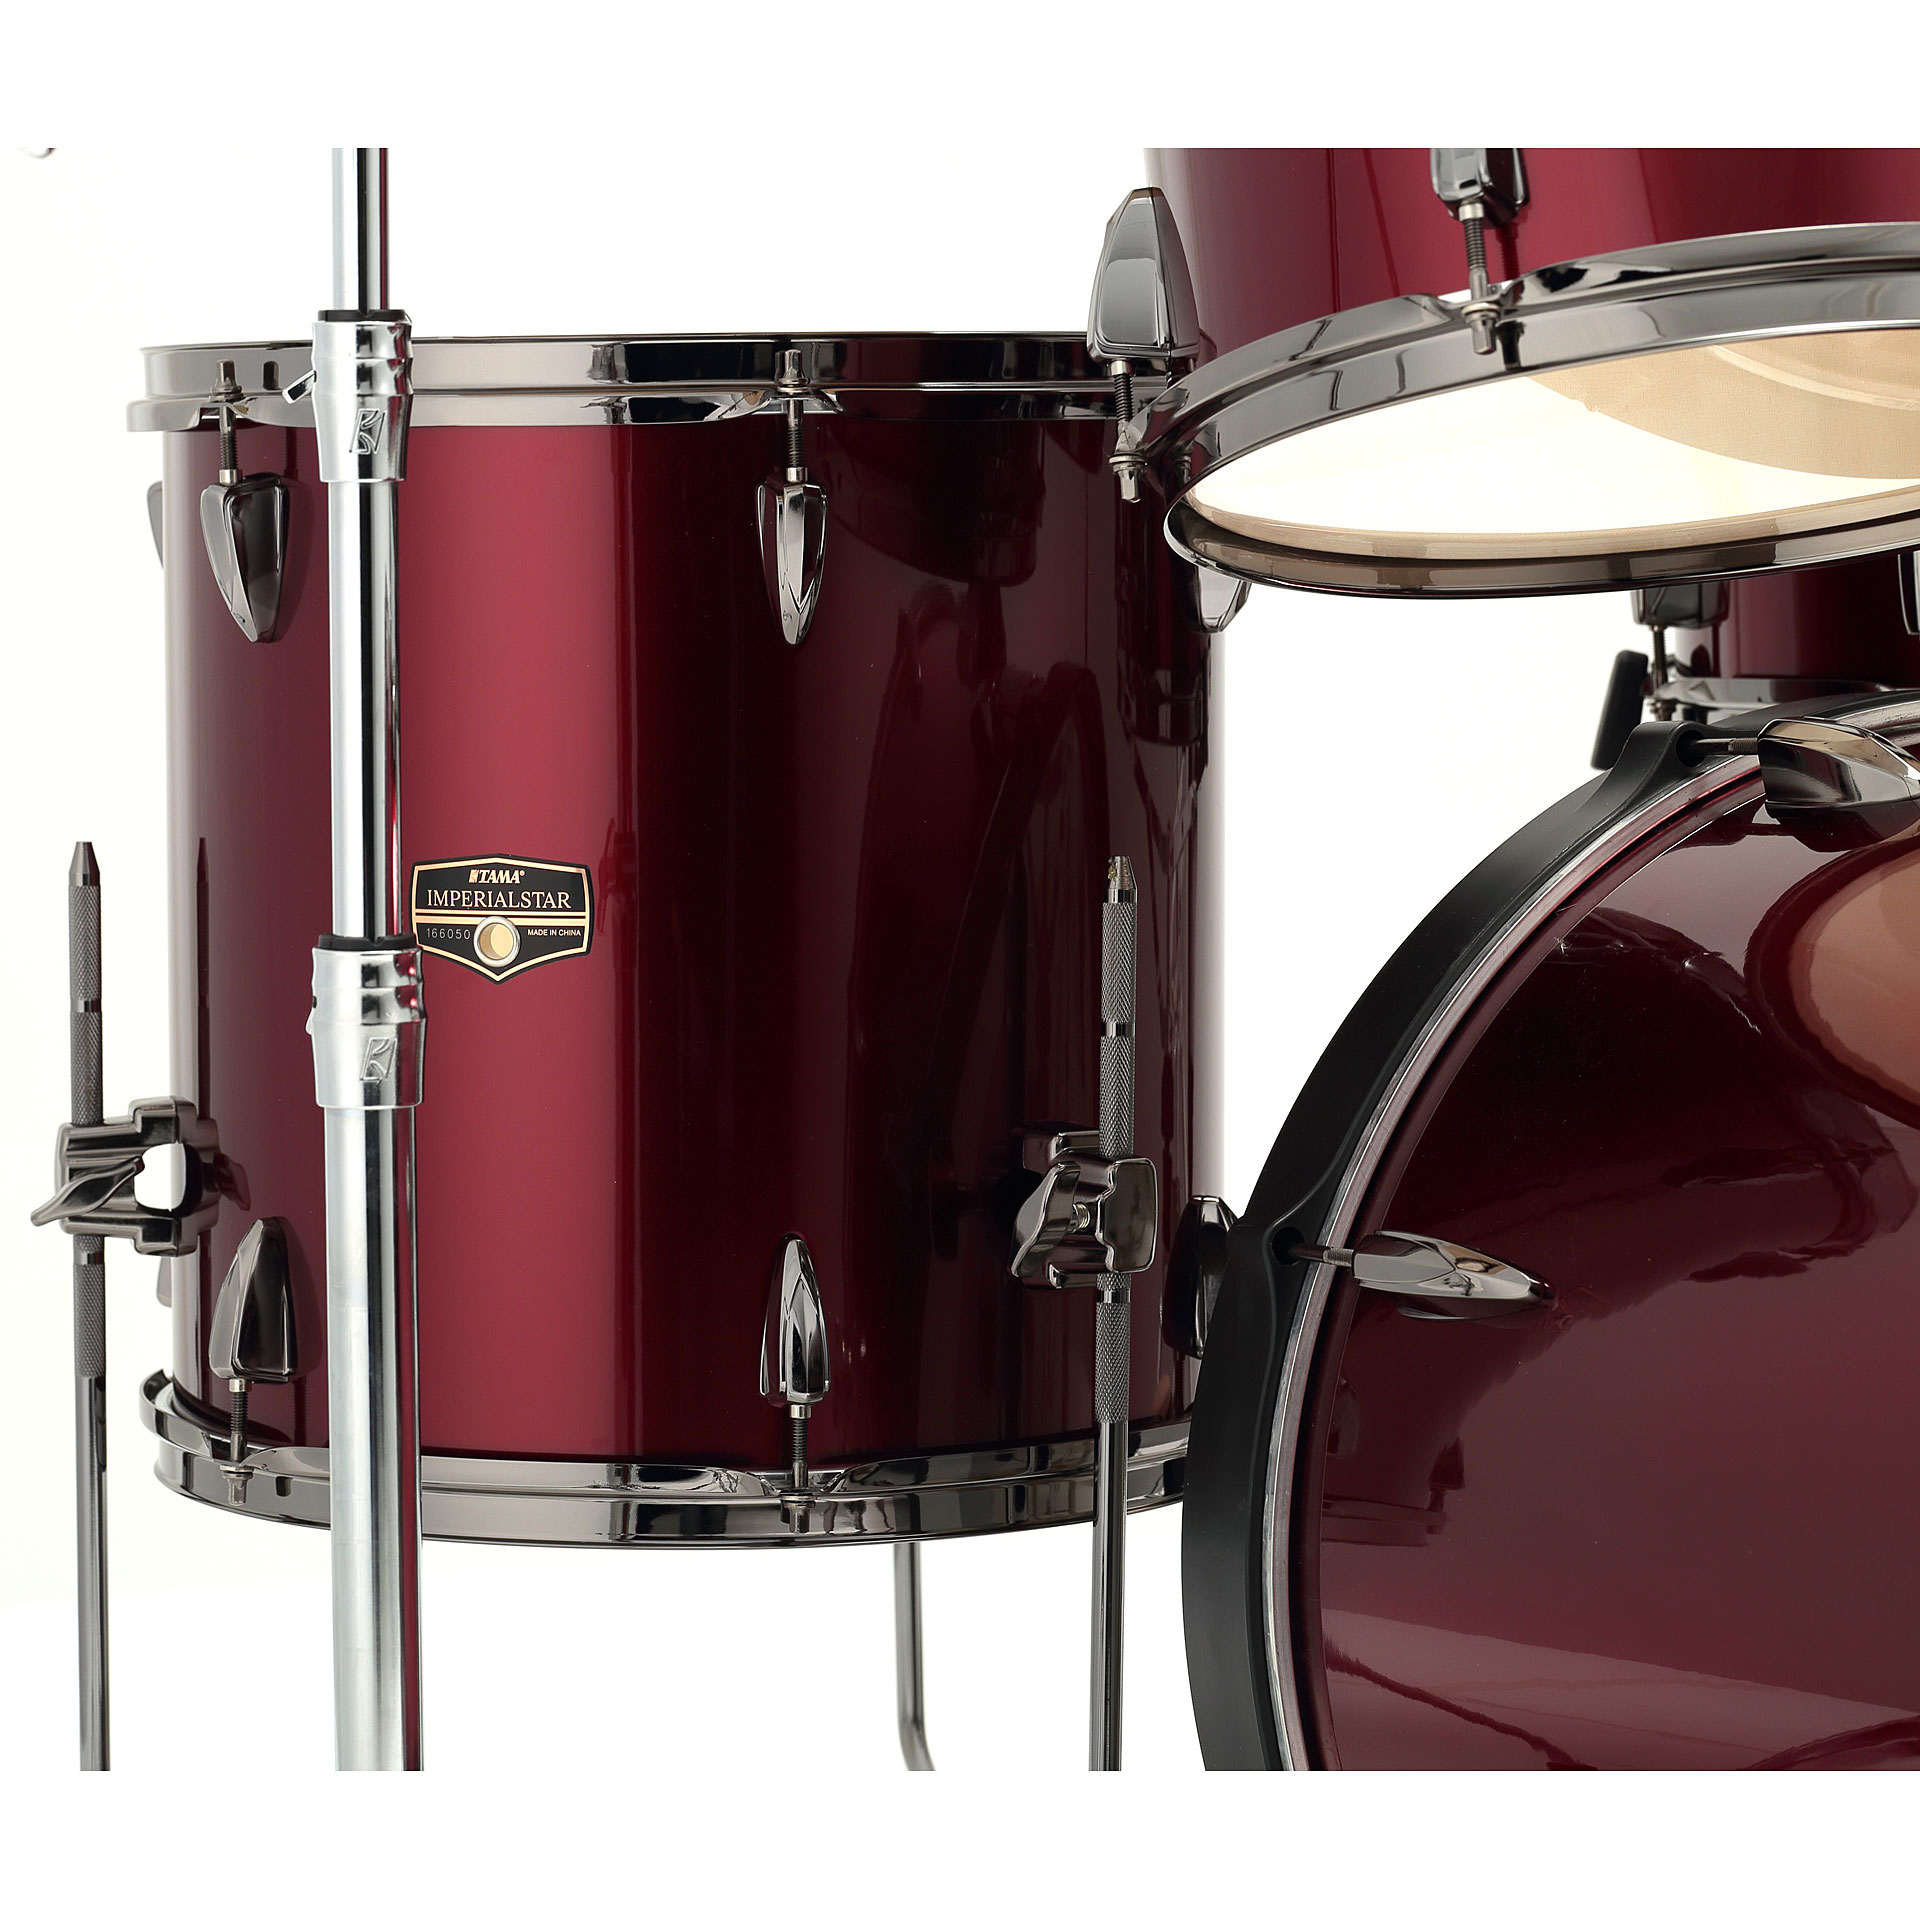 Tama imperialstar 20 vintage red drum kit for Classic house drums